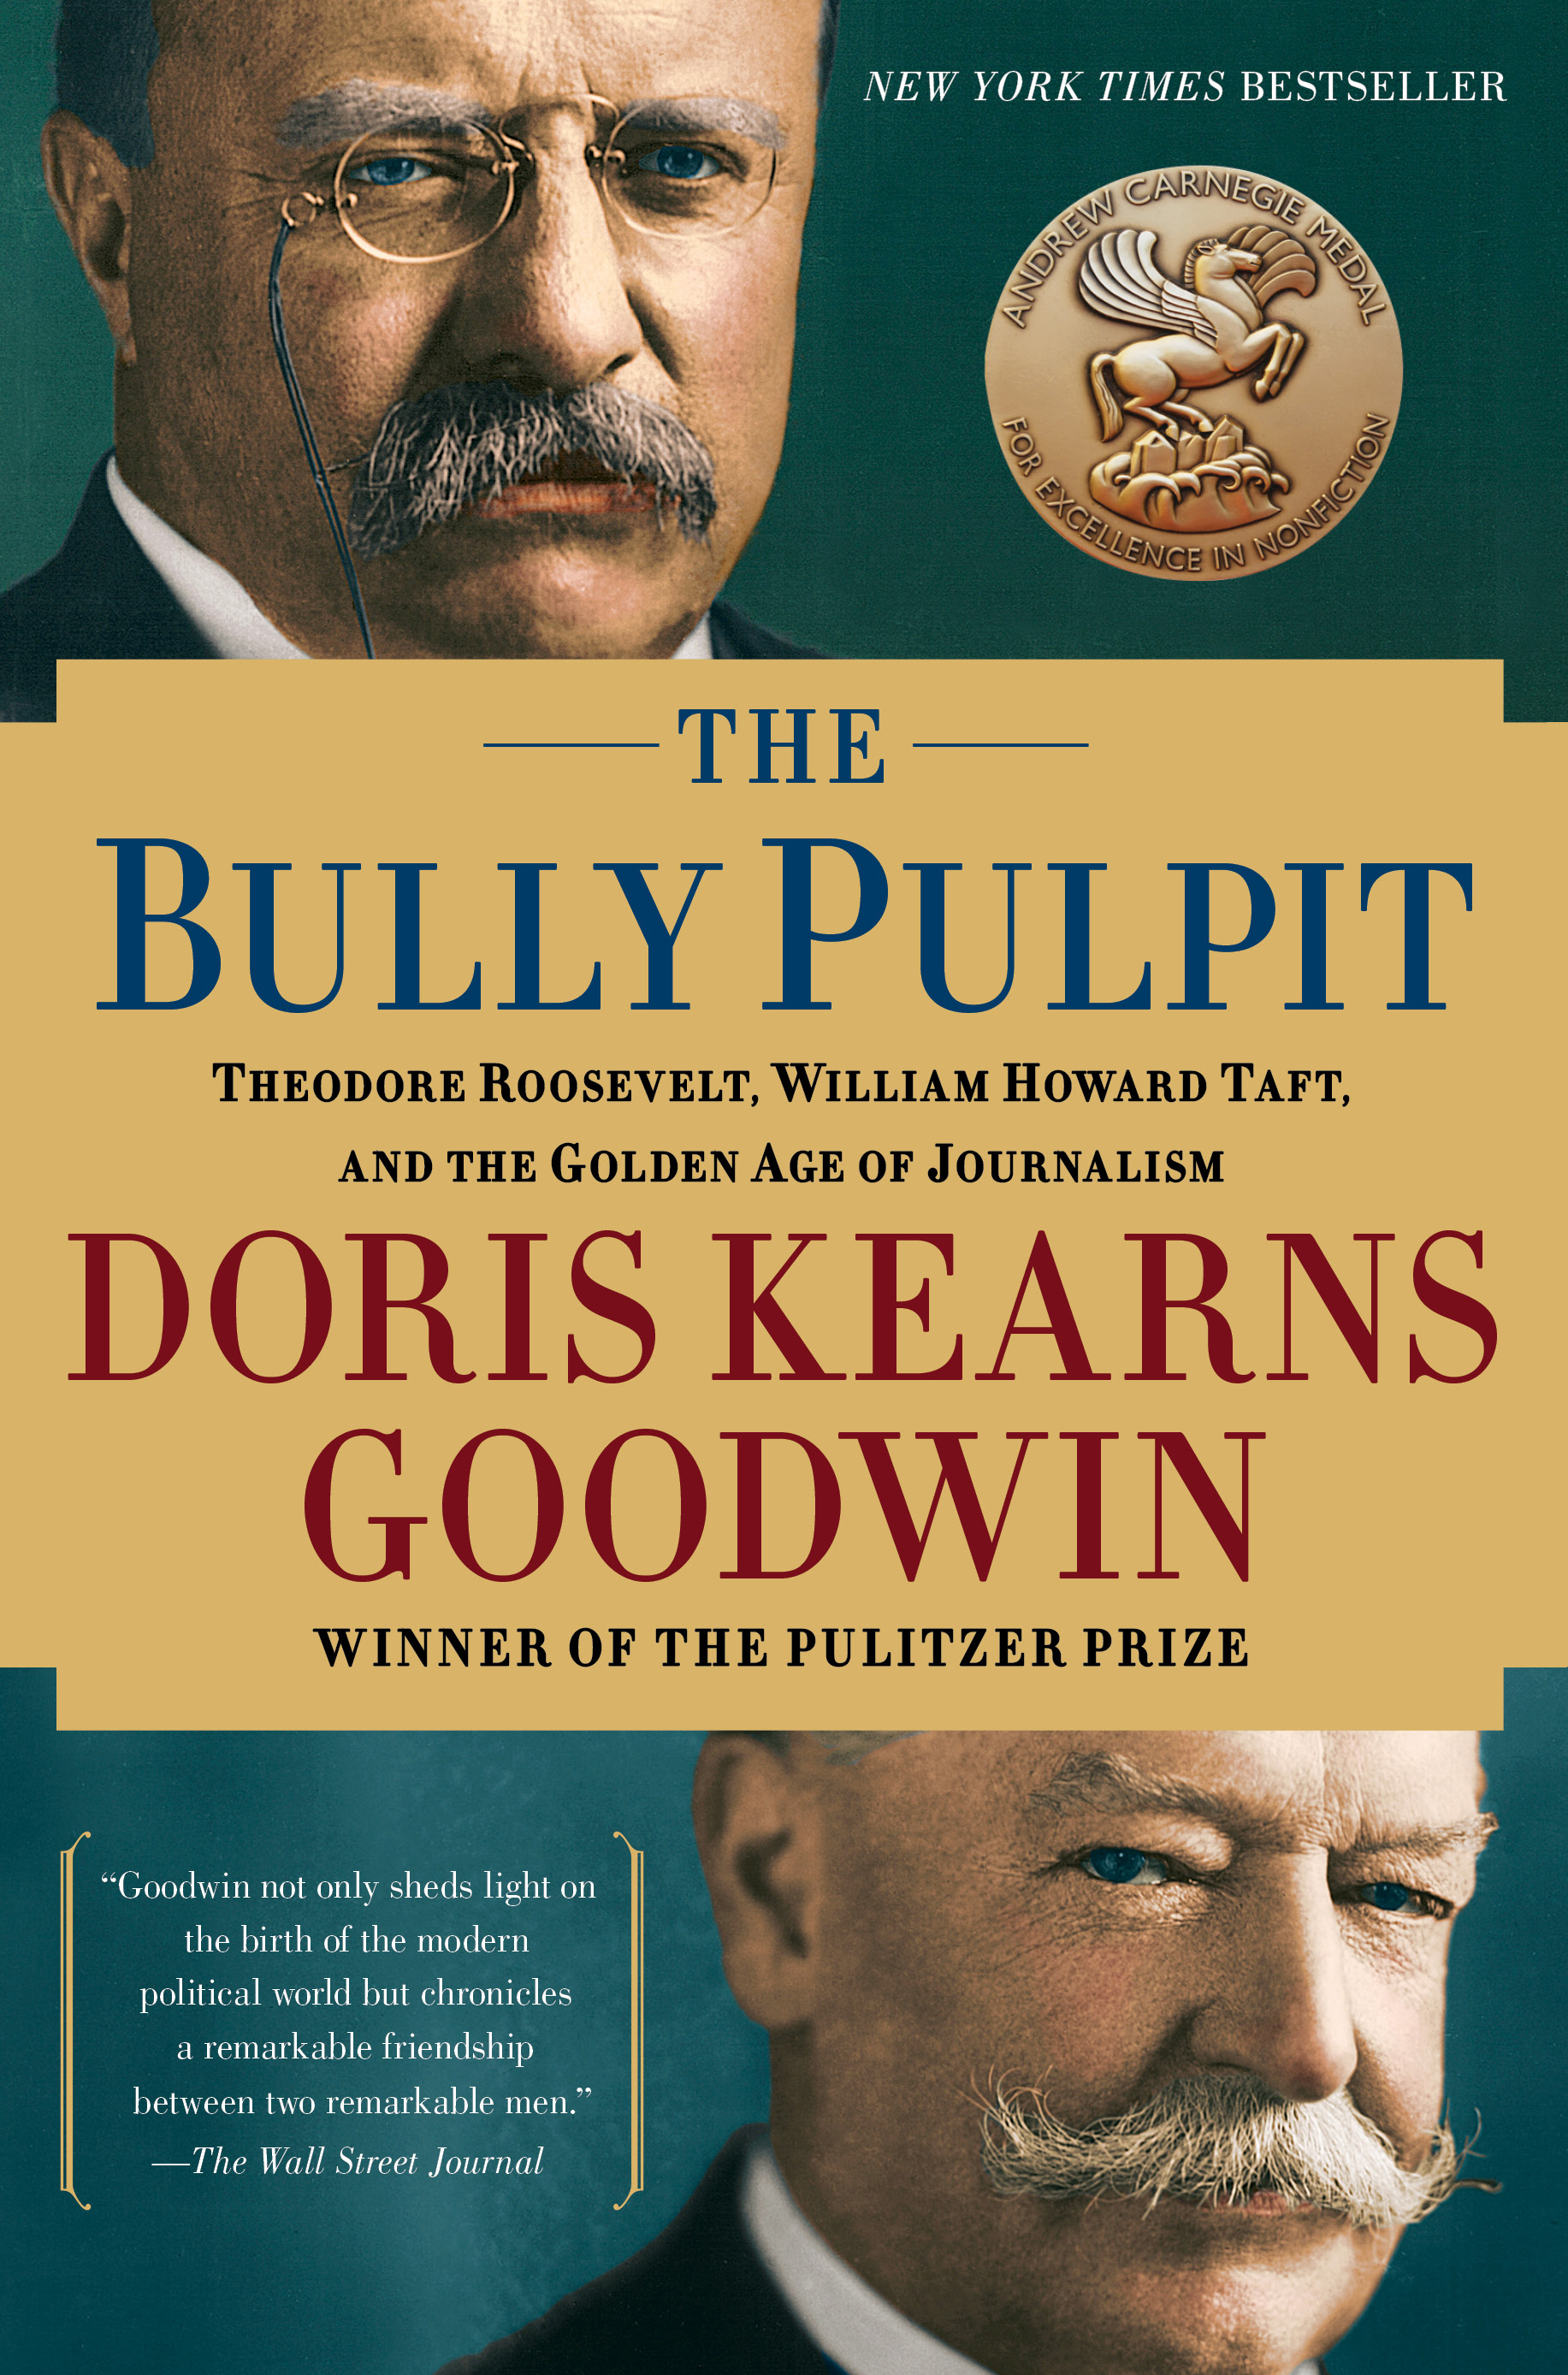 The bully pulpit 9781451673791 hr